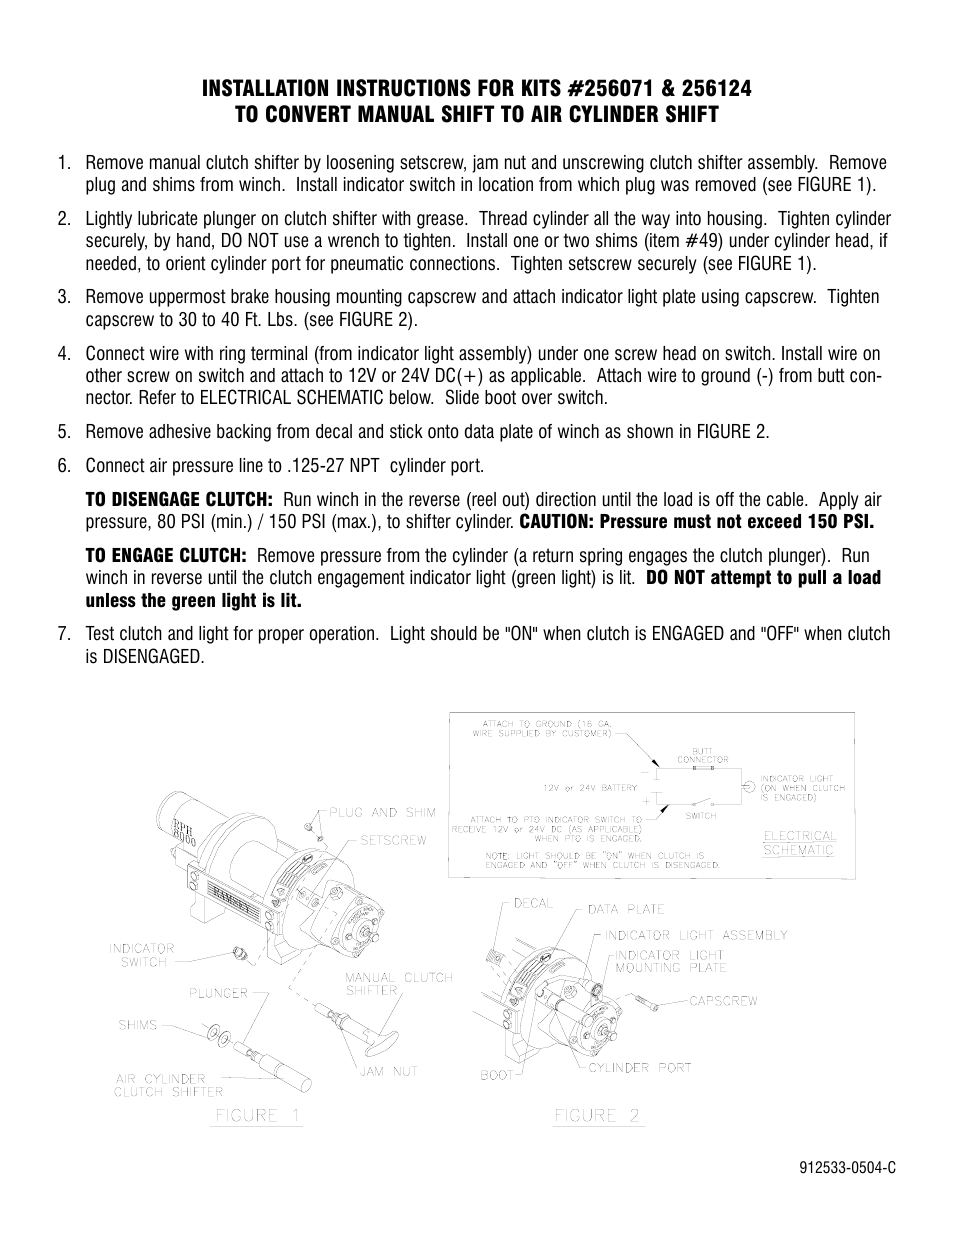 Ramsey Winch Man Shift To Air Conversion Kit 256071 256124 Cylinder Schematic User Manual 1 Page